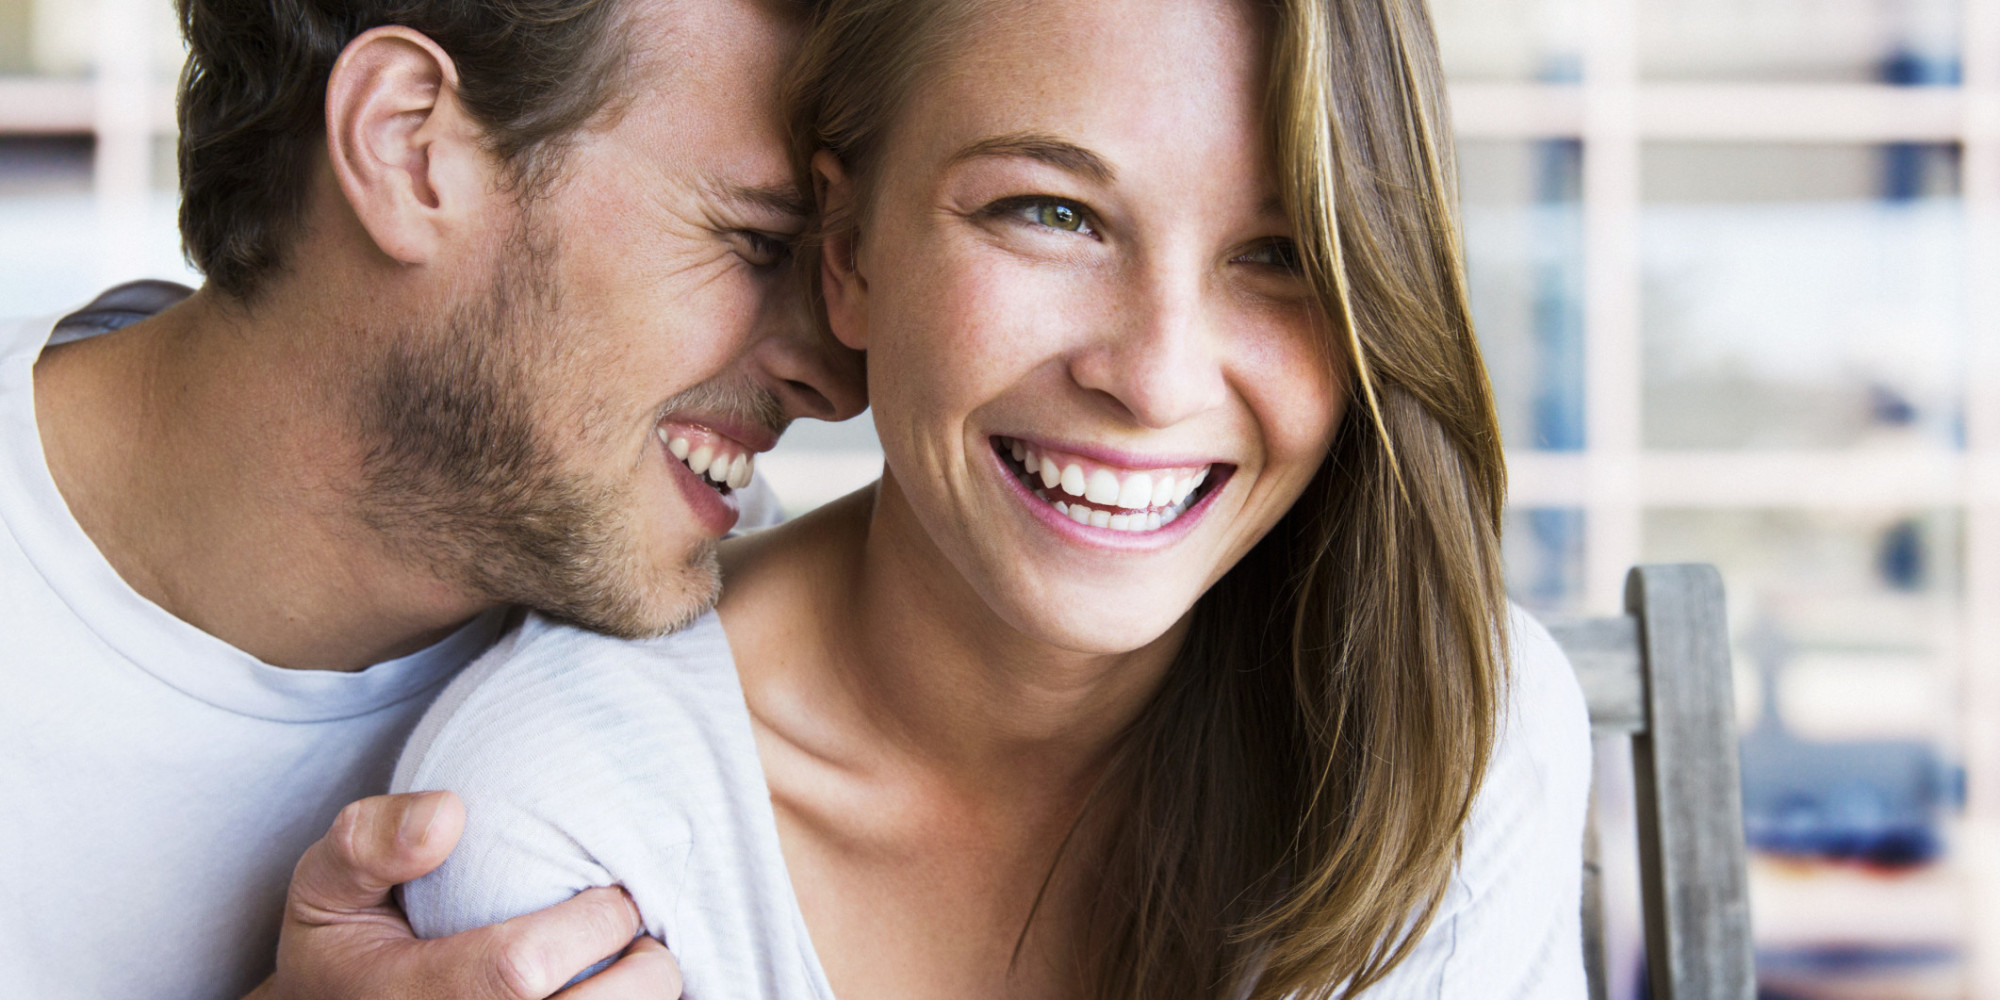 meeting new women tips free flirting sites without payment